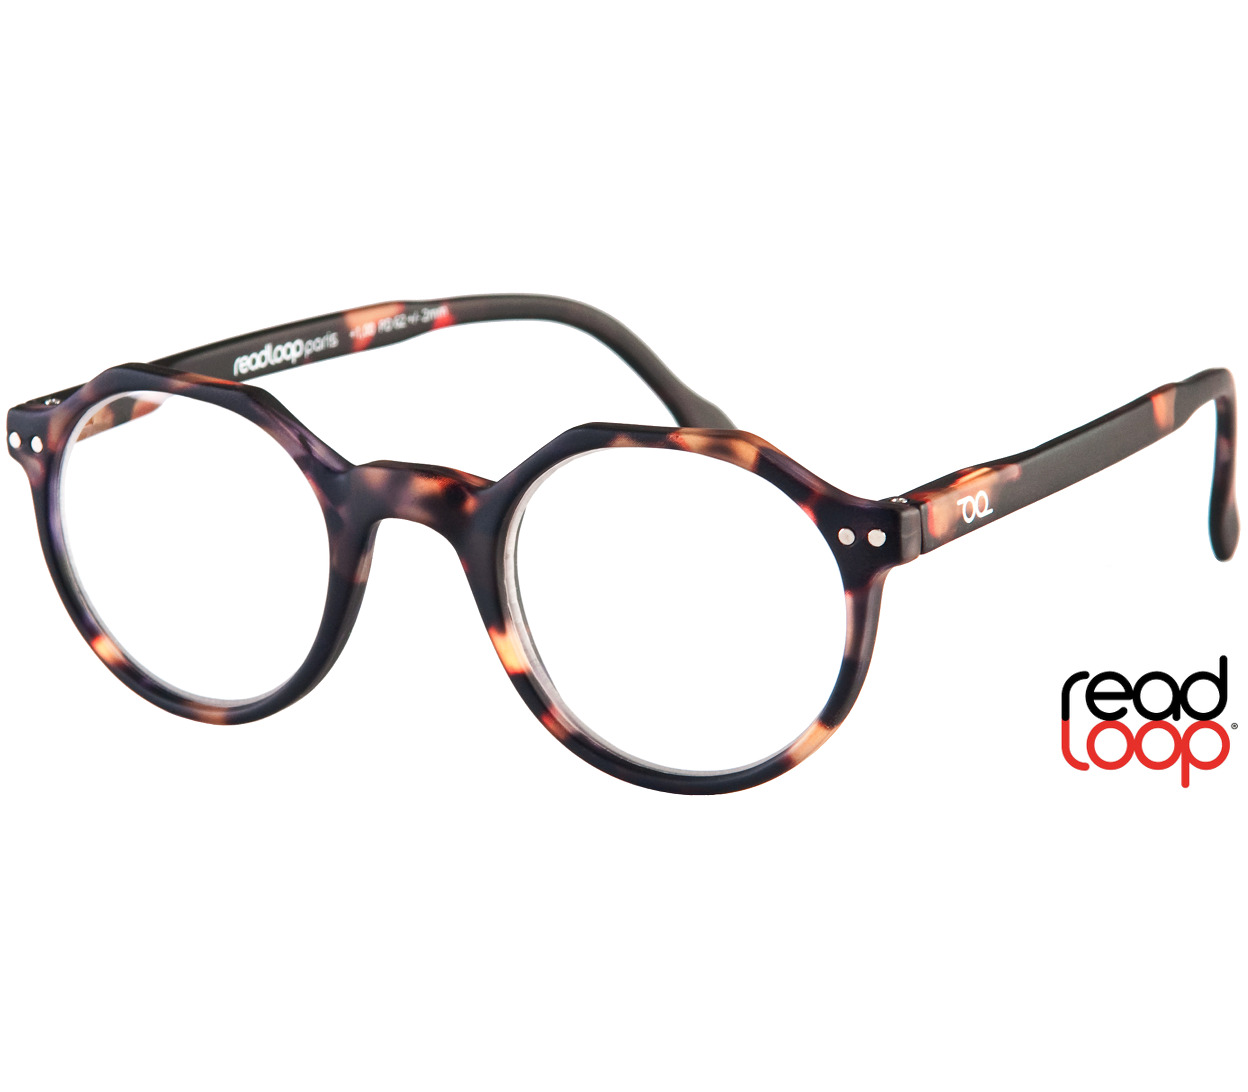 Main Image (Angle) - Hurricane (Tortoiseshell) Reading Glasses